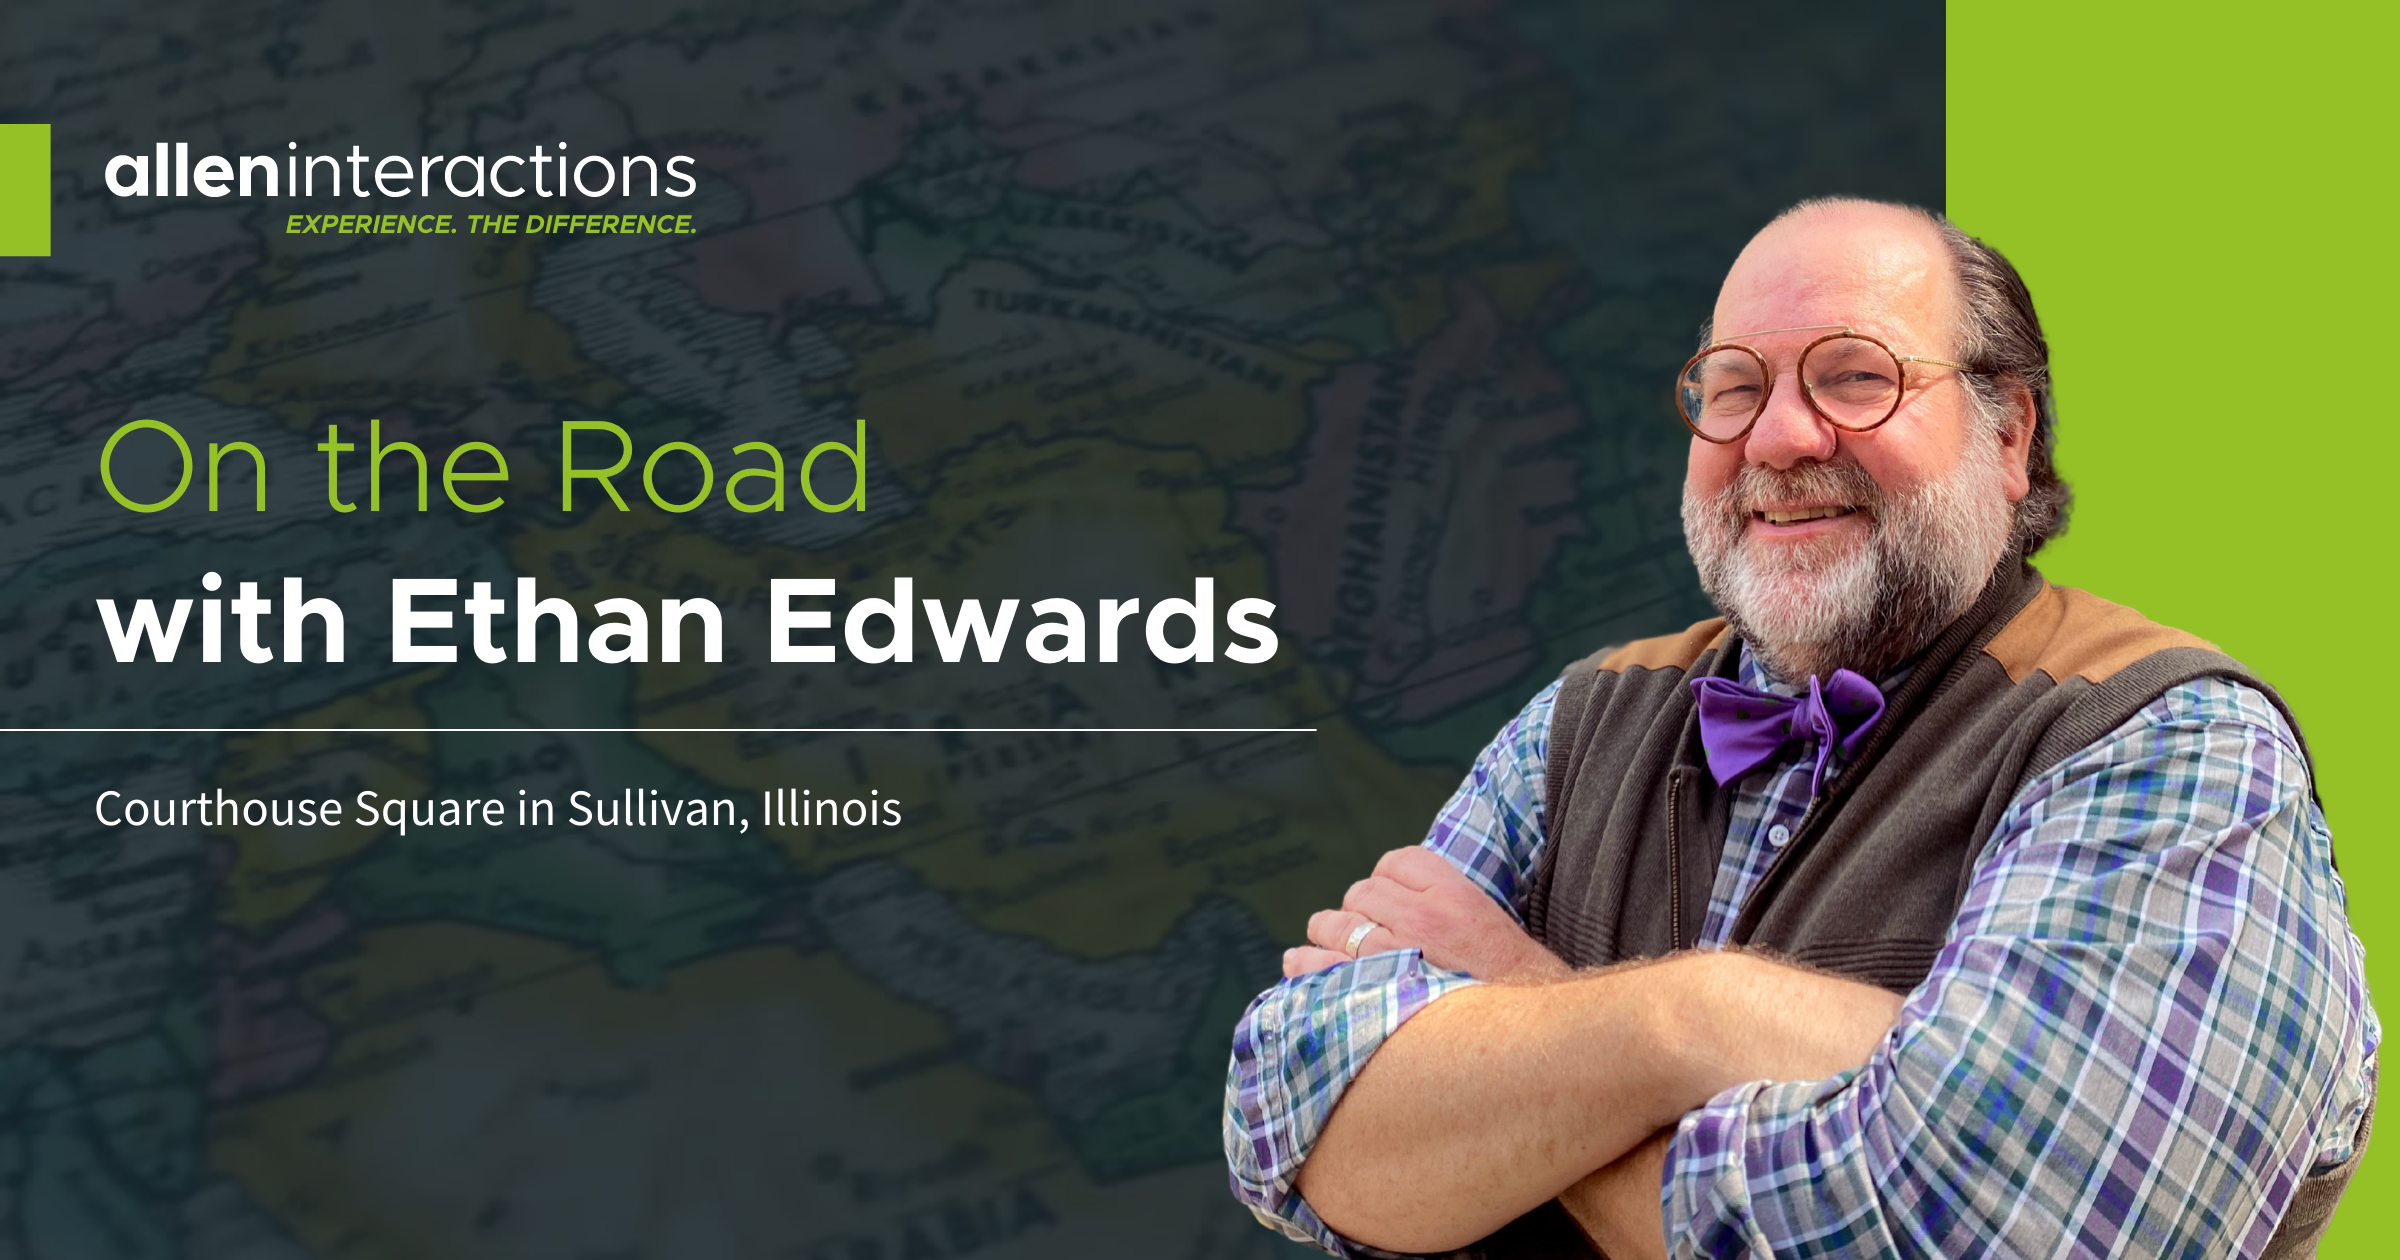 On the Road with Ethan Edwards: Courthouse Square in Sullivan, Illinois